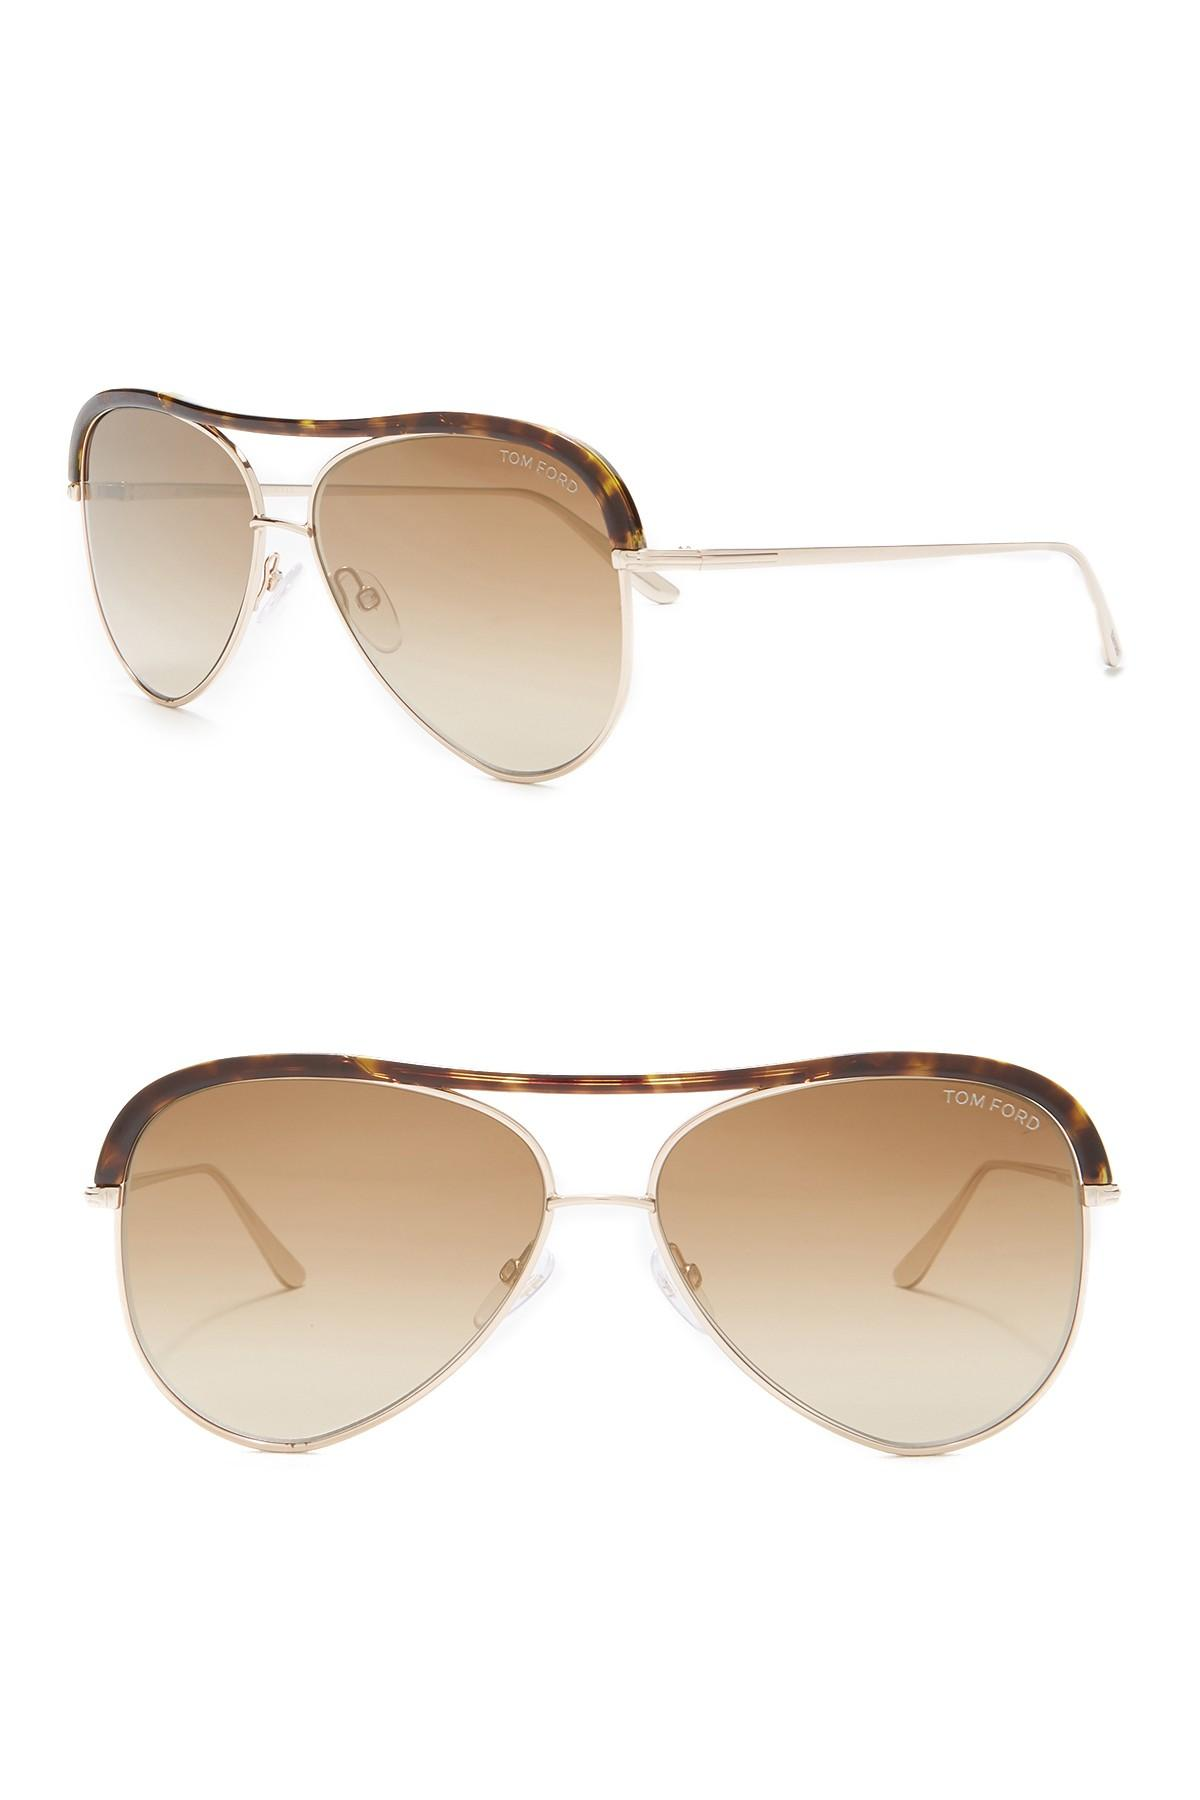 6b3015095ee Tom Ford - Multicolor 60mm Aviator Sunglasses - Lyst. View fullscreen